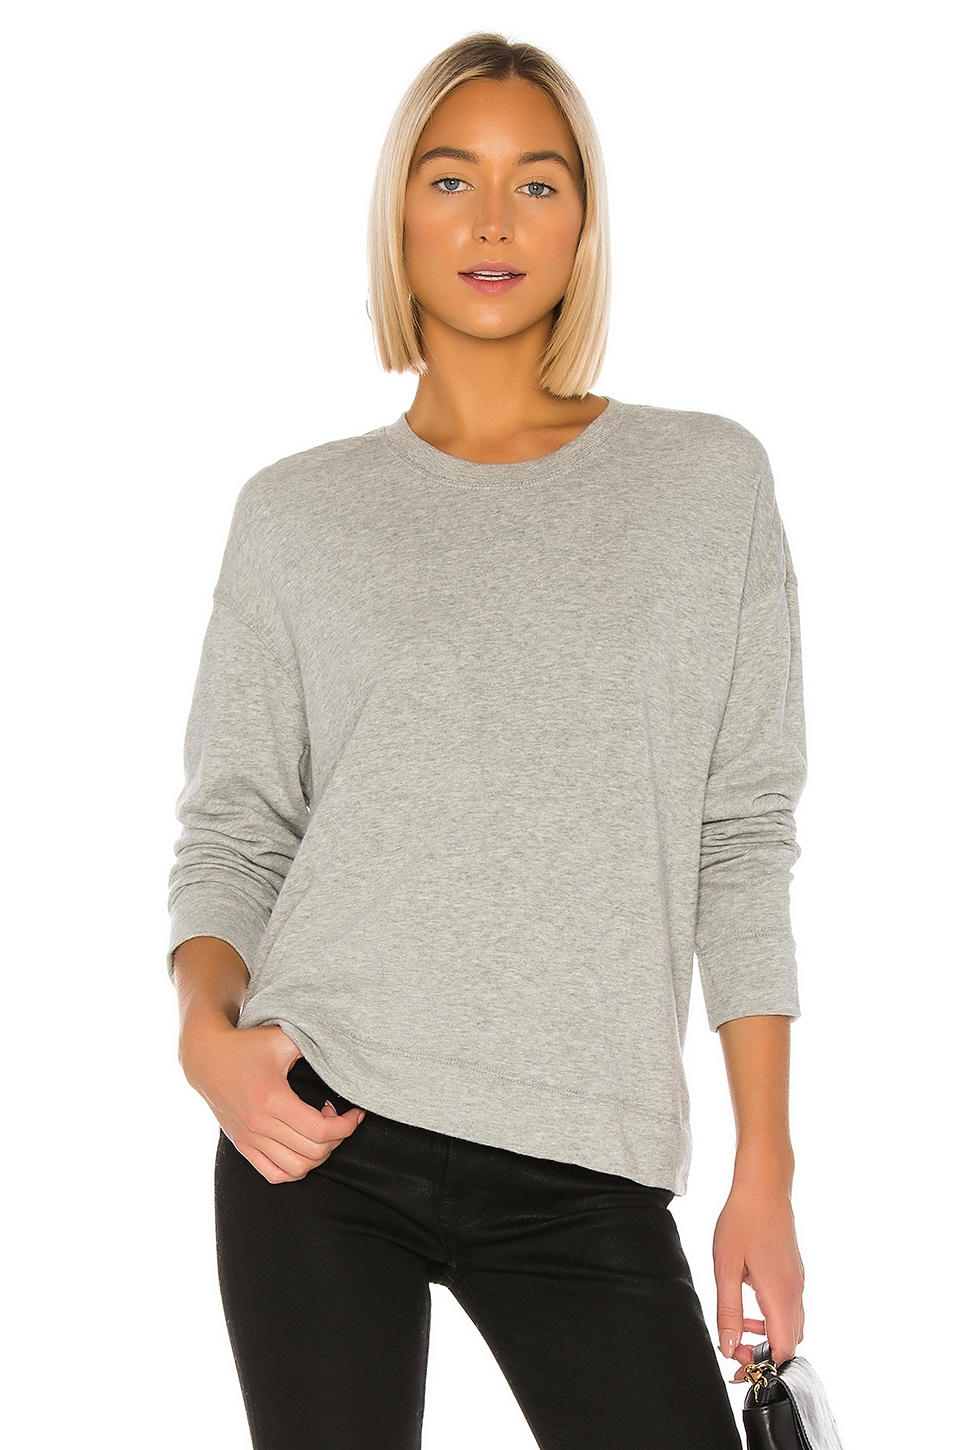 James Perse Relaxed Crop Pullover Sweatshirt in Heather Grey